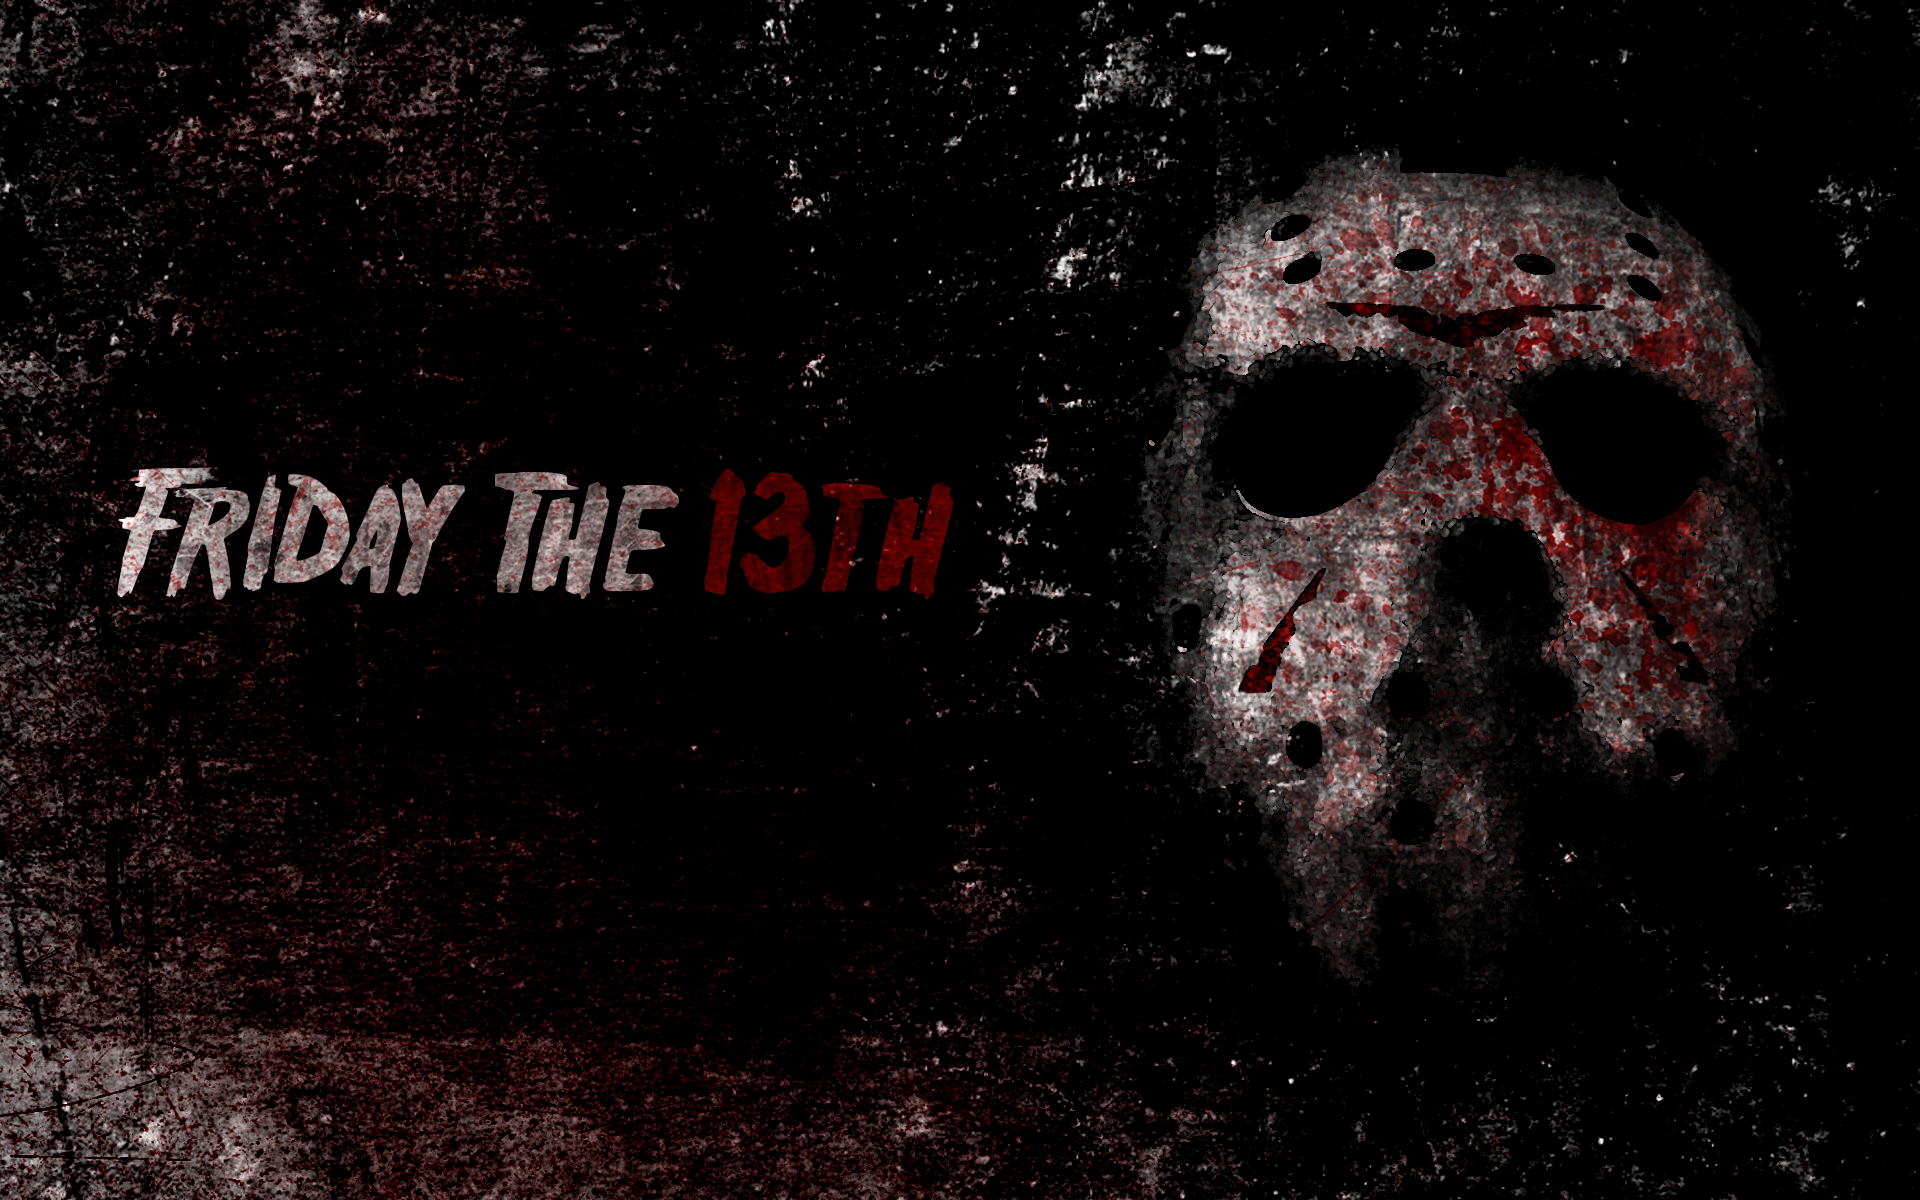 Friday The 13th By Sgtp3pper On Deviantart